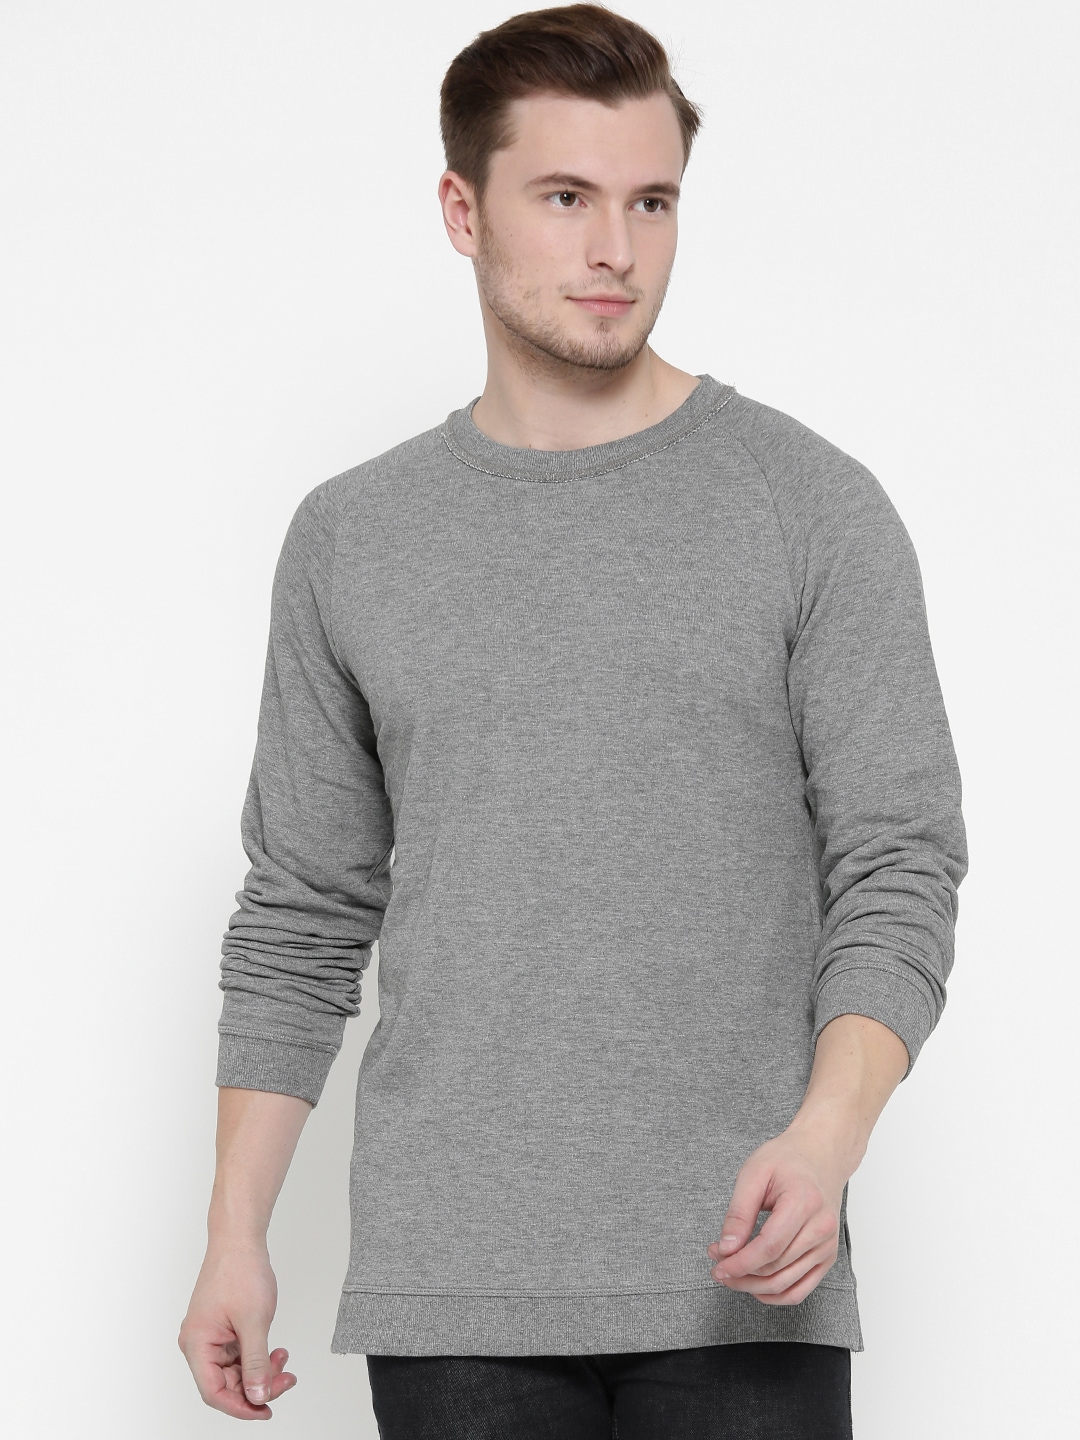 OVS Men Grey Melange Solid Sweatshirt image